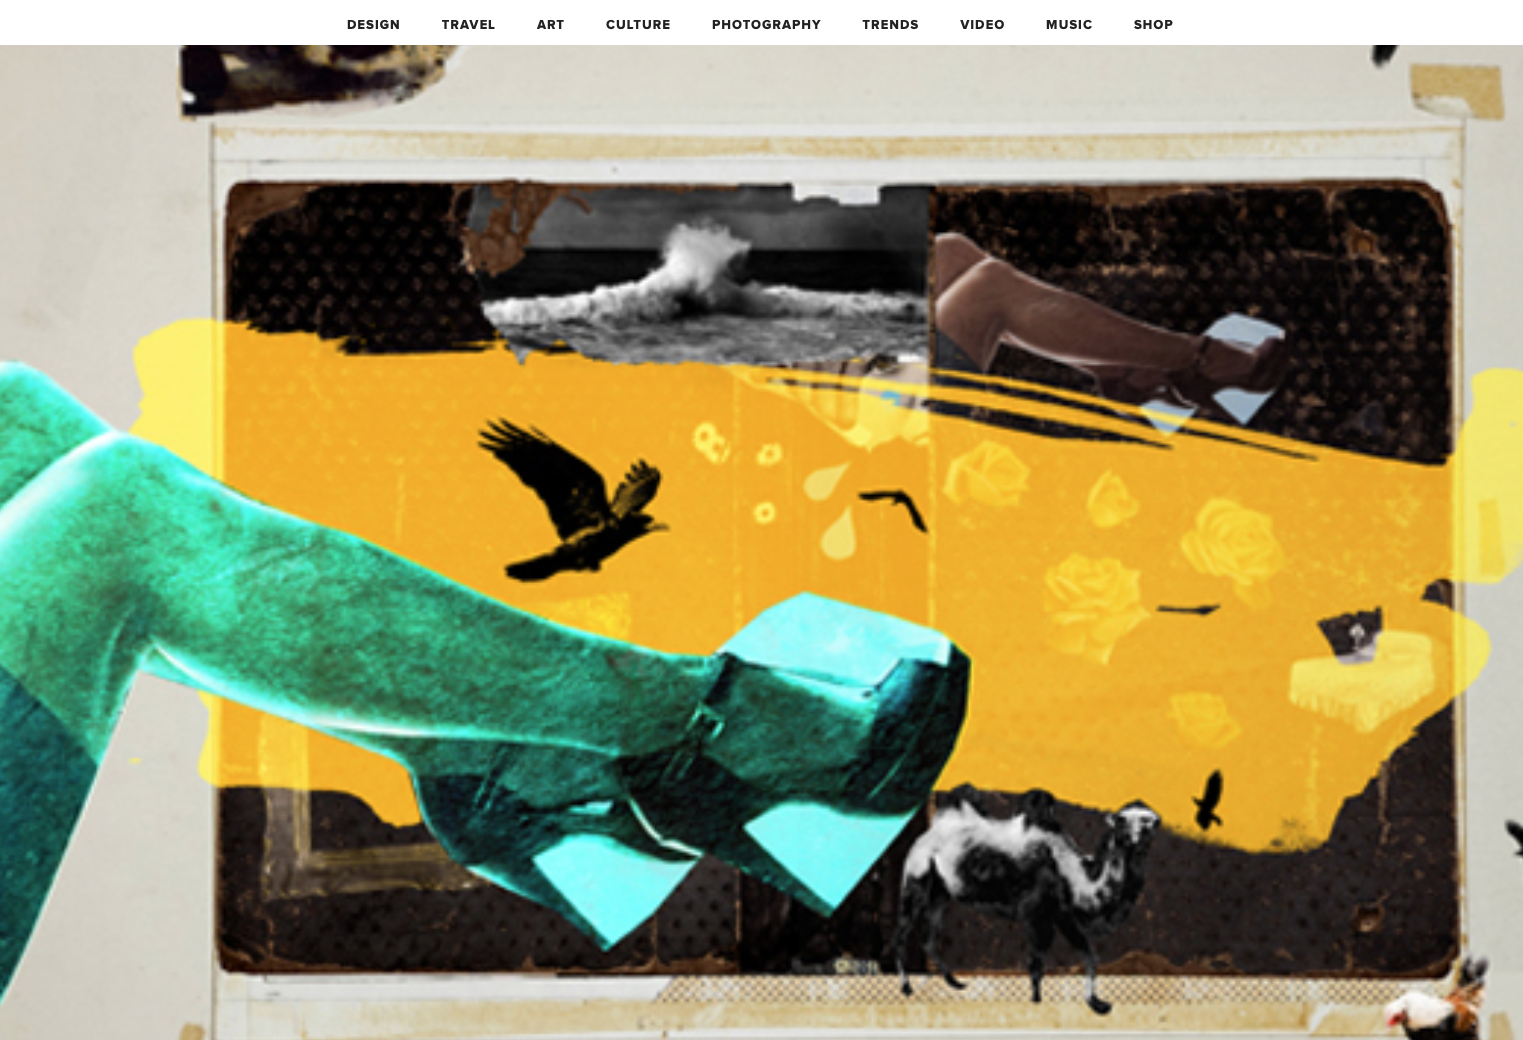 Trendland - click on the image to go to the website.